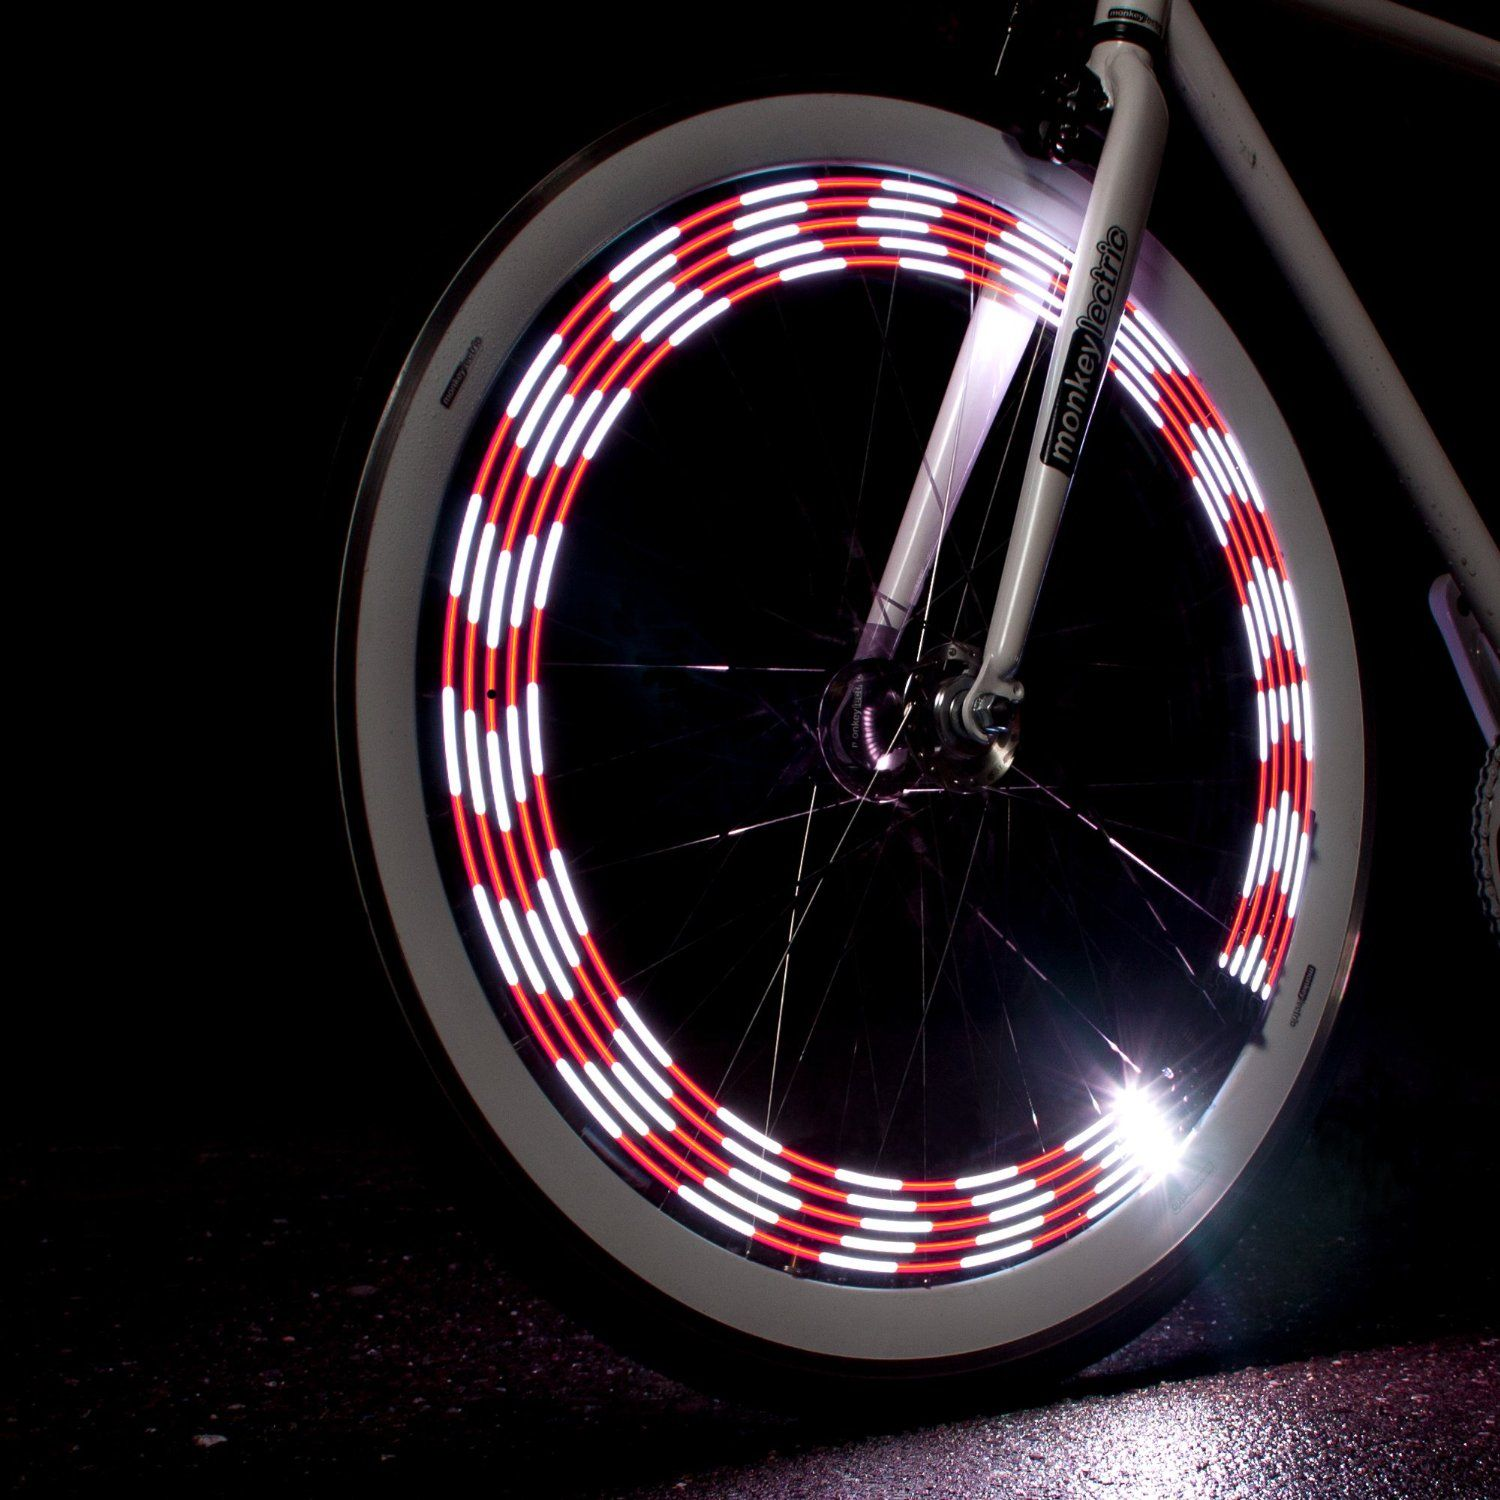 bicycle set night tire philips led lighting are bike astonishing for dynamo amazon design i my comely lights light beautiful walmart home want full cool of size these